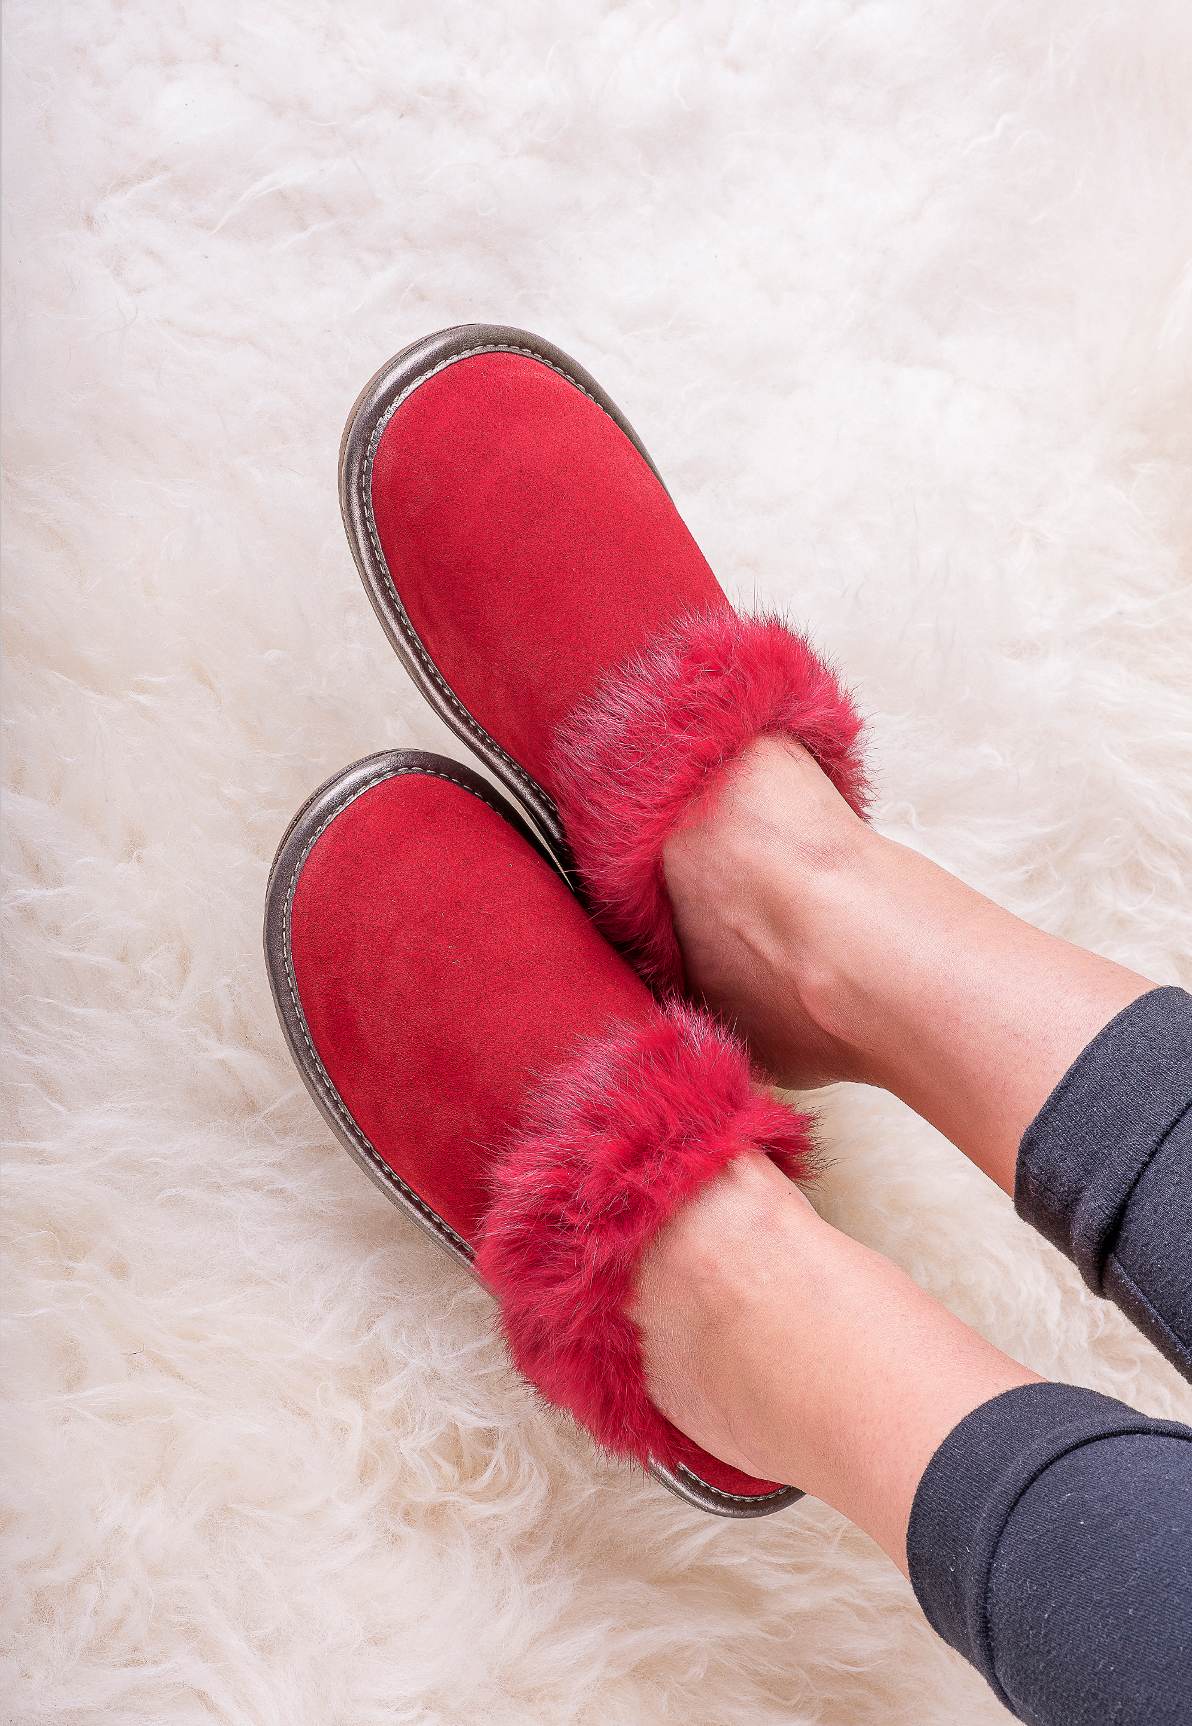 Nordikas – The best slippers you will ever buy….And we have proof!